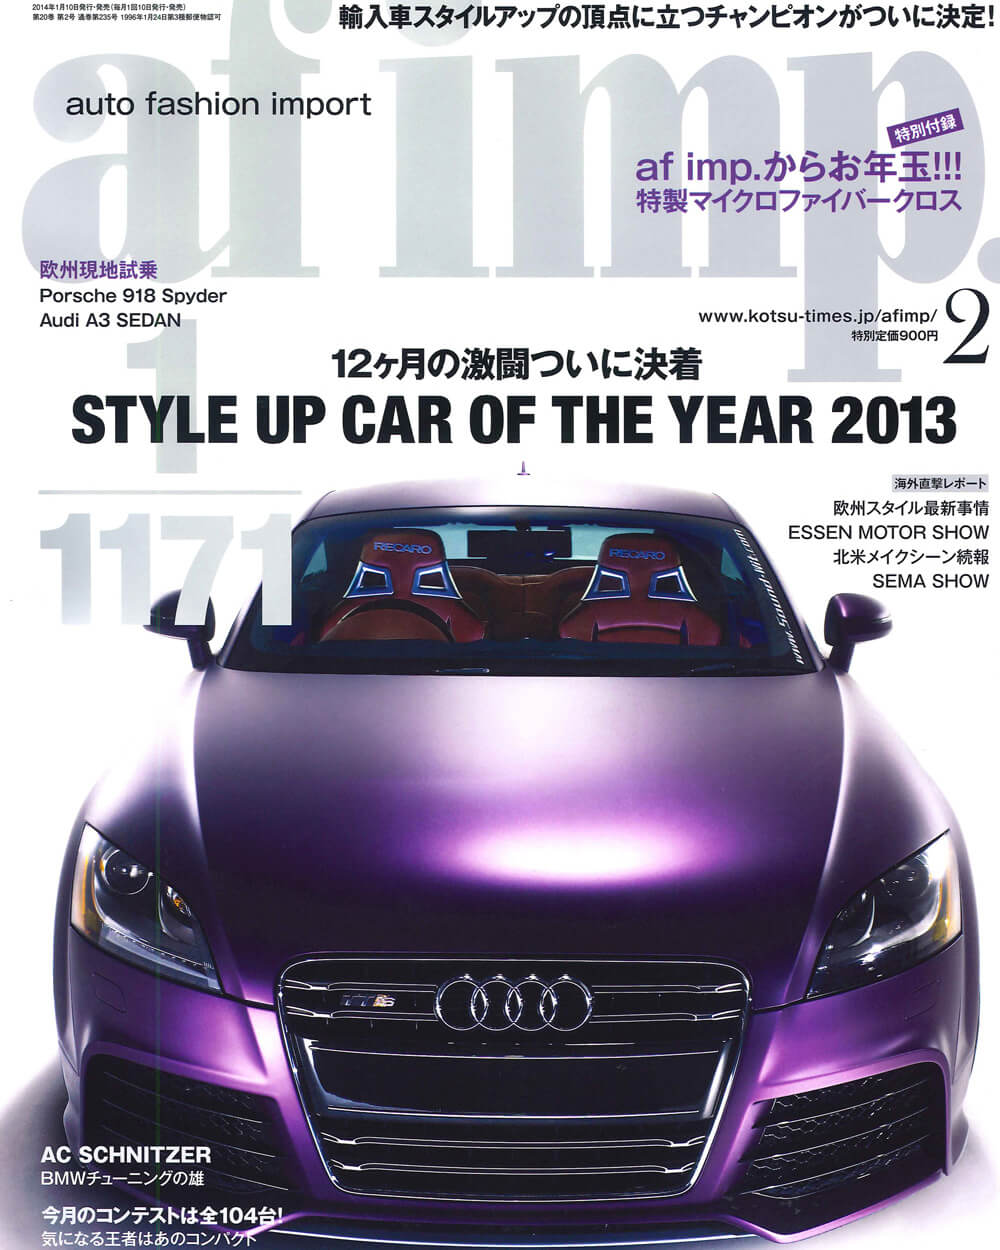 af imp Feb. issue